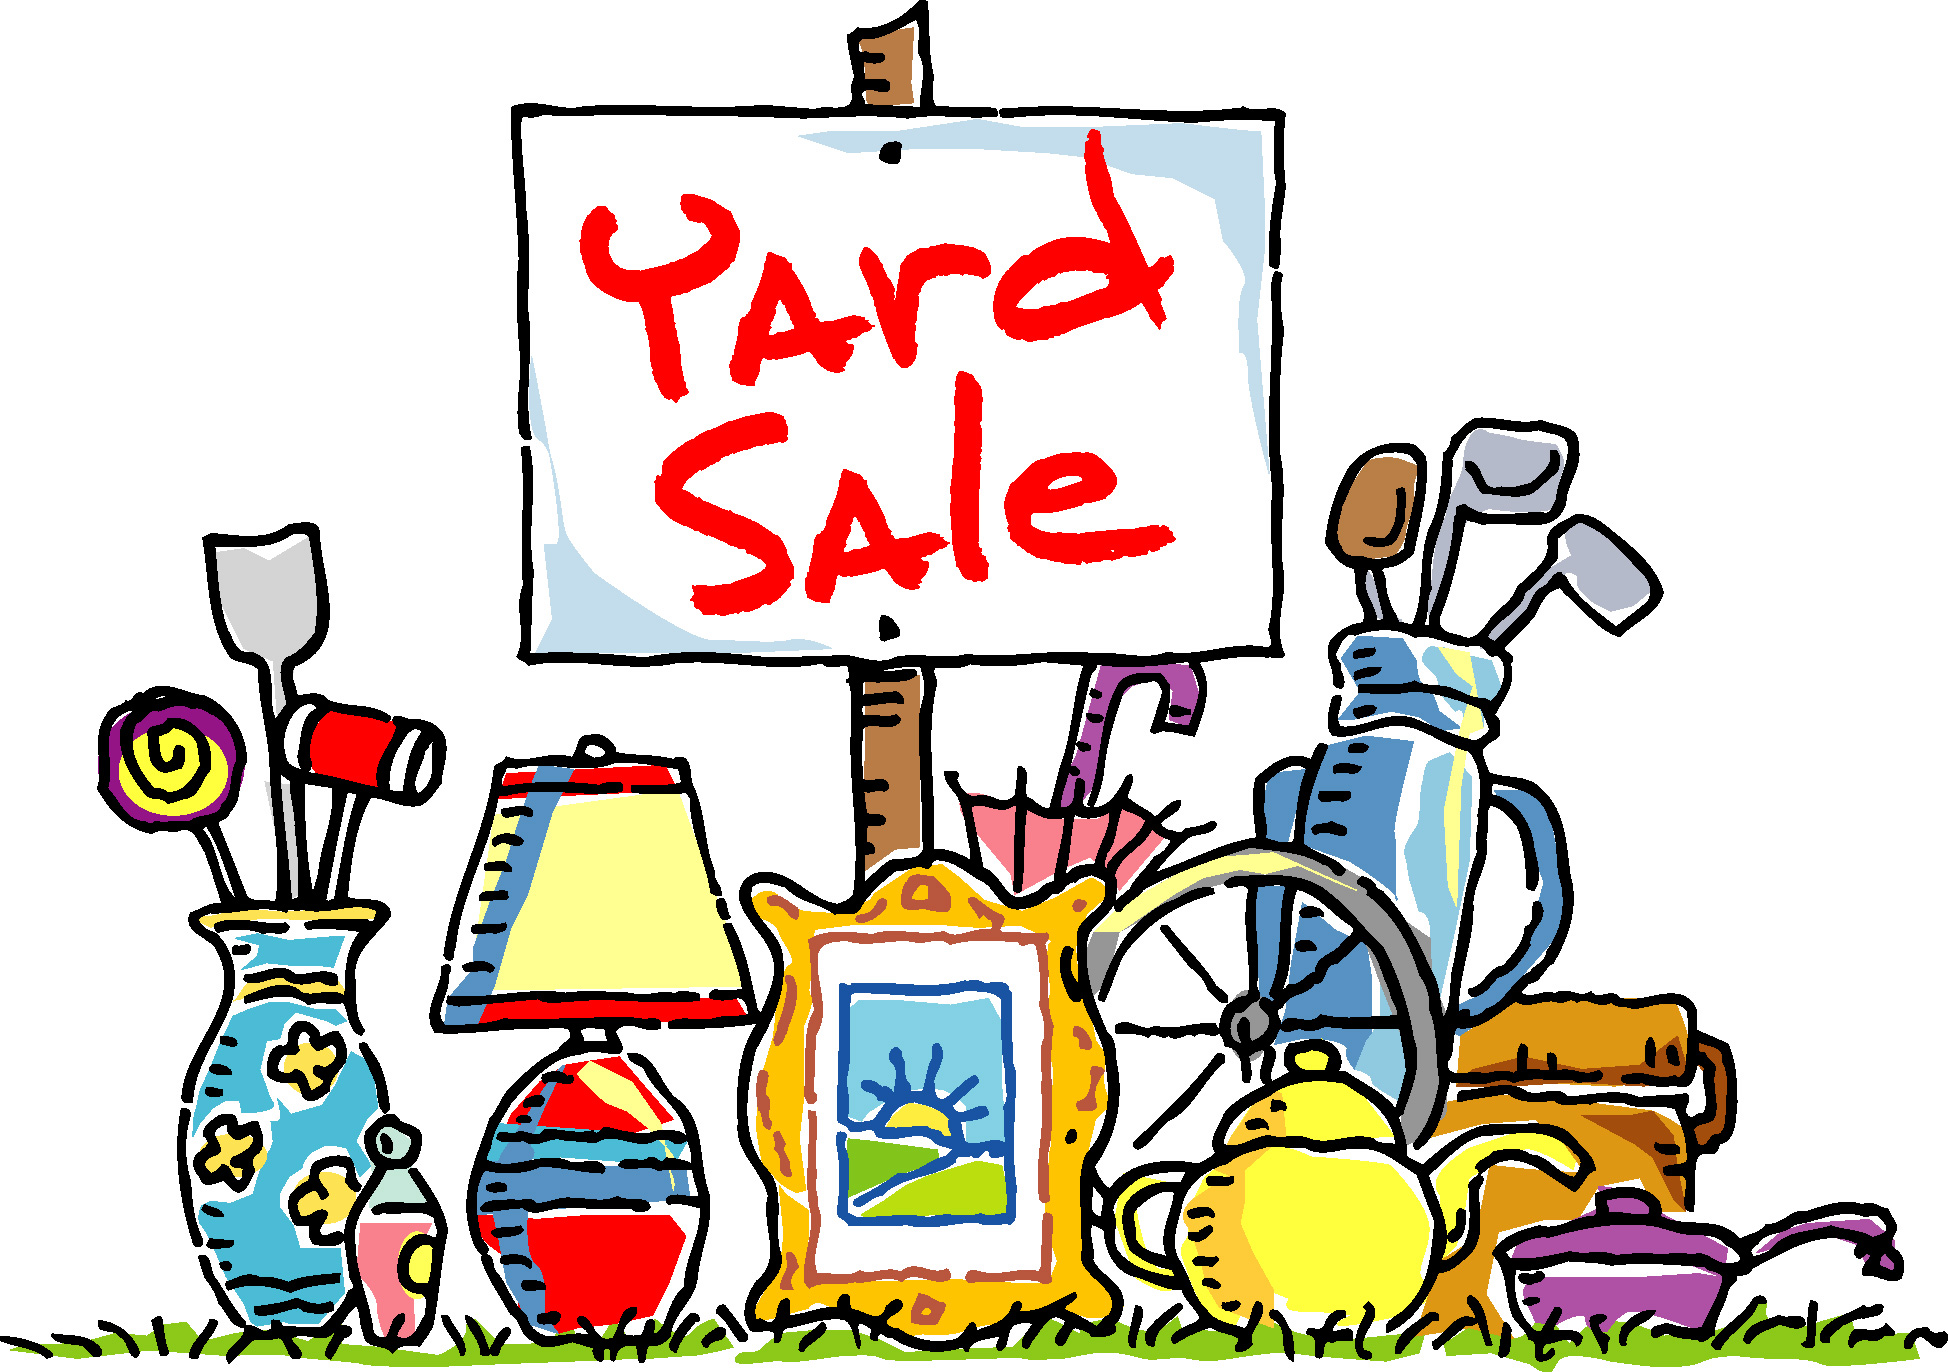 Free PNG Yard Sale Sign - 40687